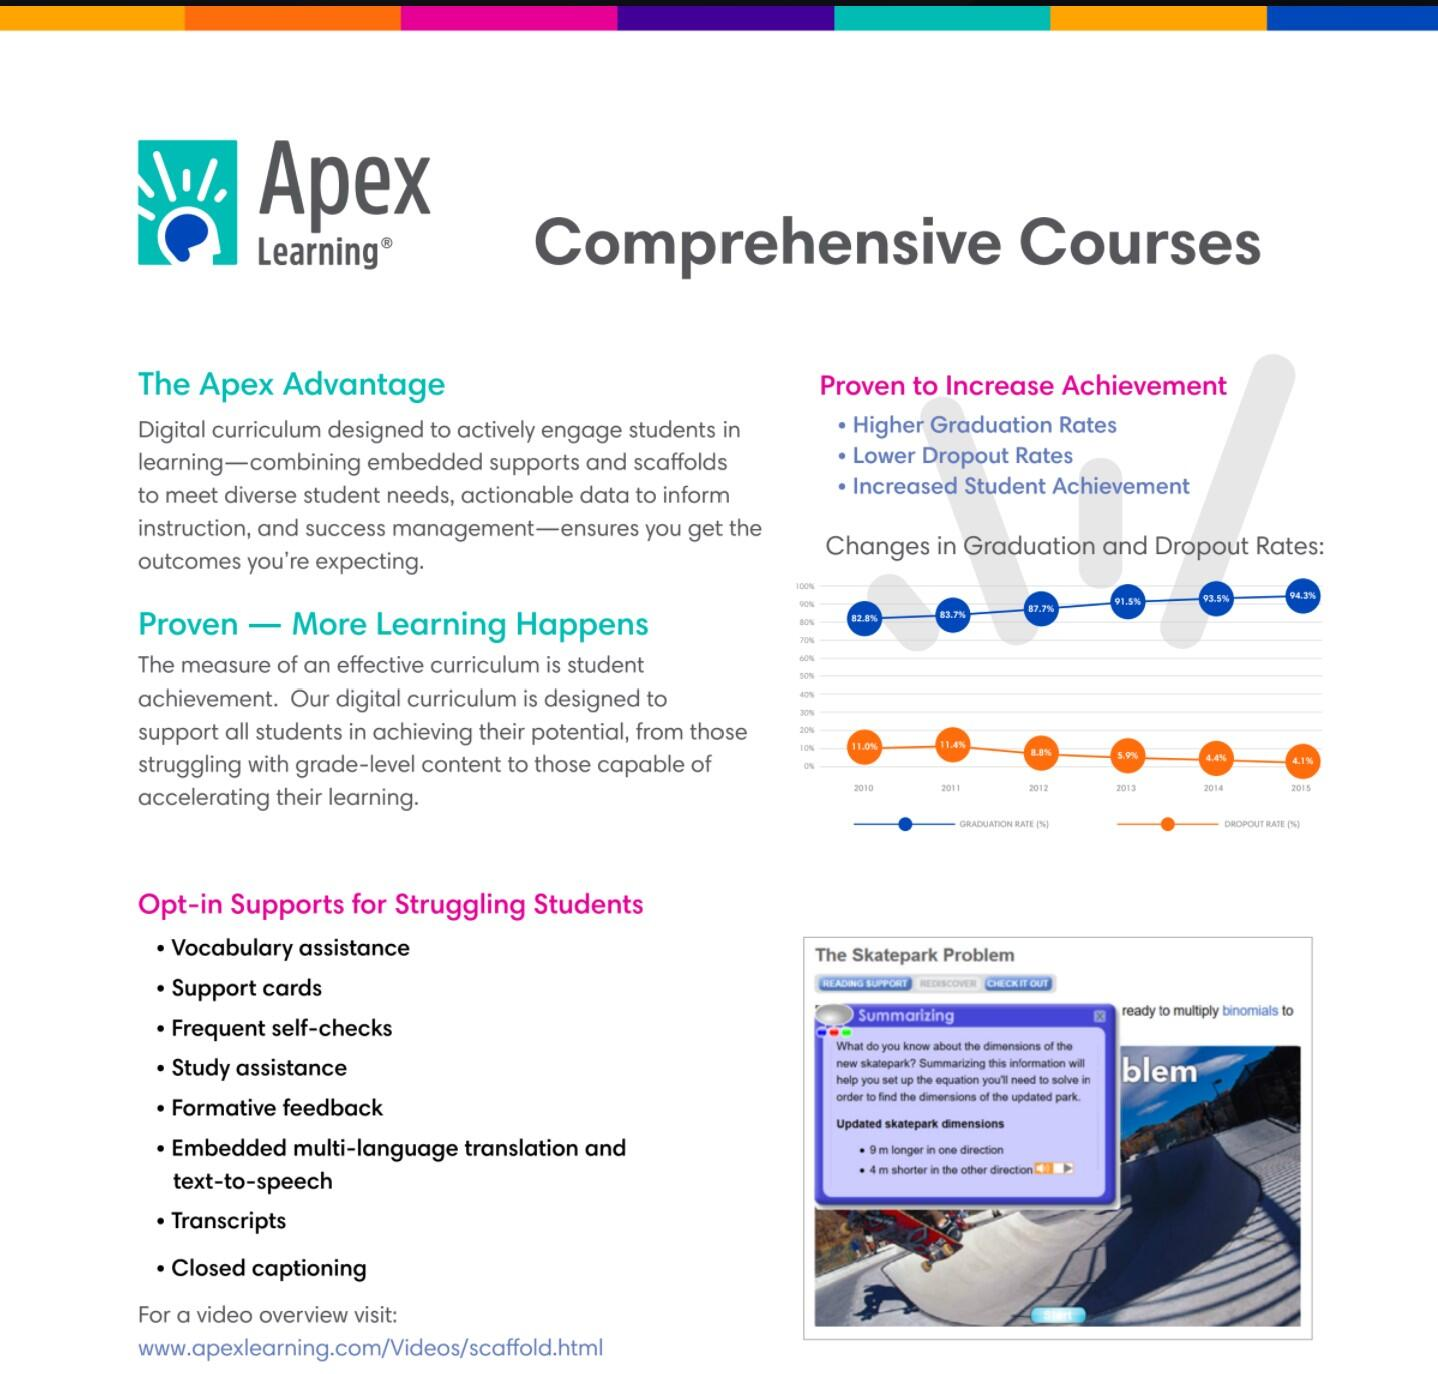 Comprehensive Courses from Apex Learning